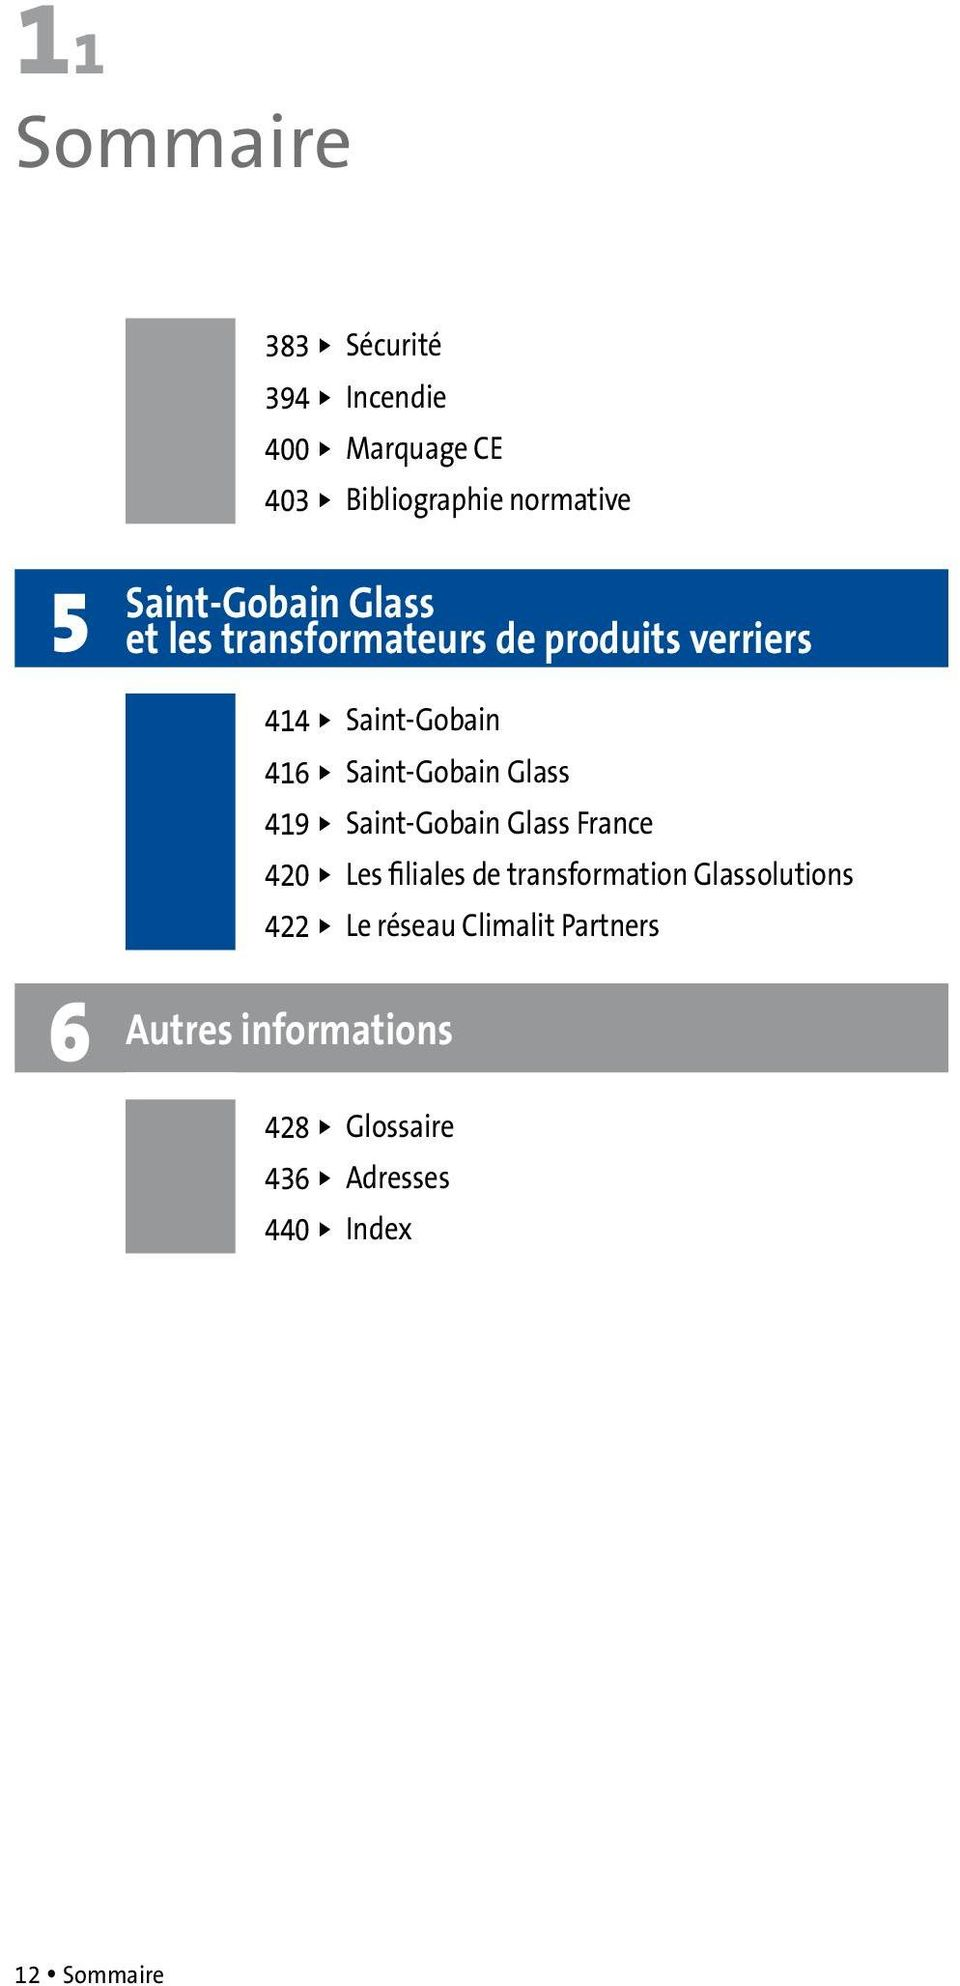 Saint-Gobain Glass 419 u Saint-Gobain Glass France 420 u Les filiales de transformation